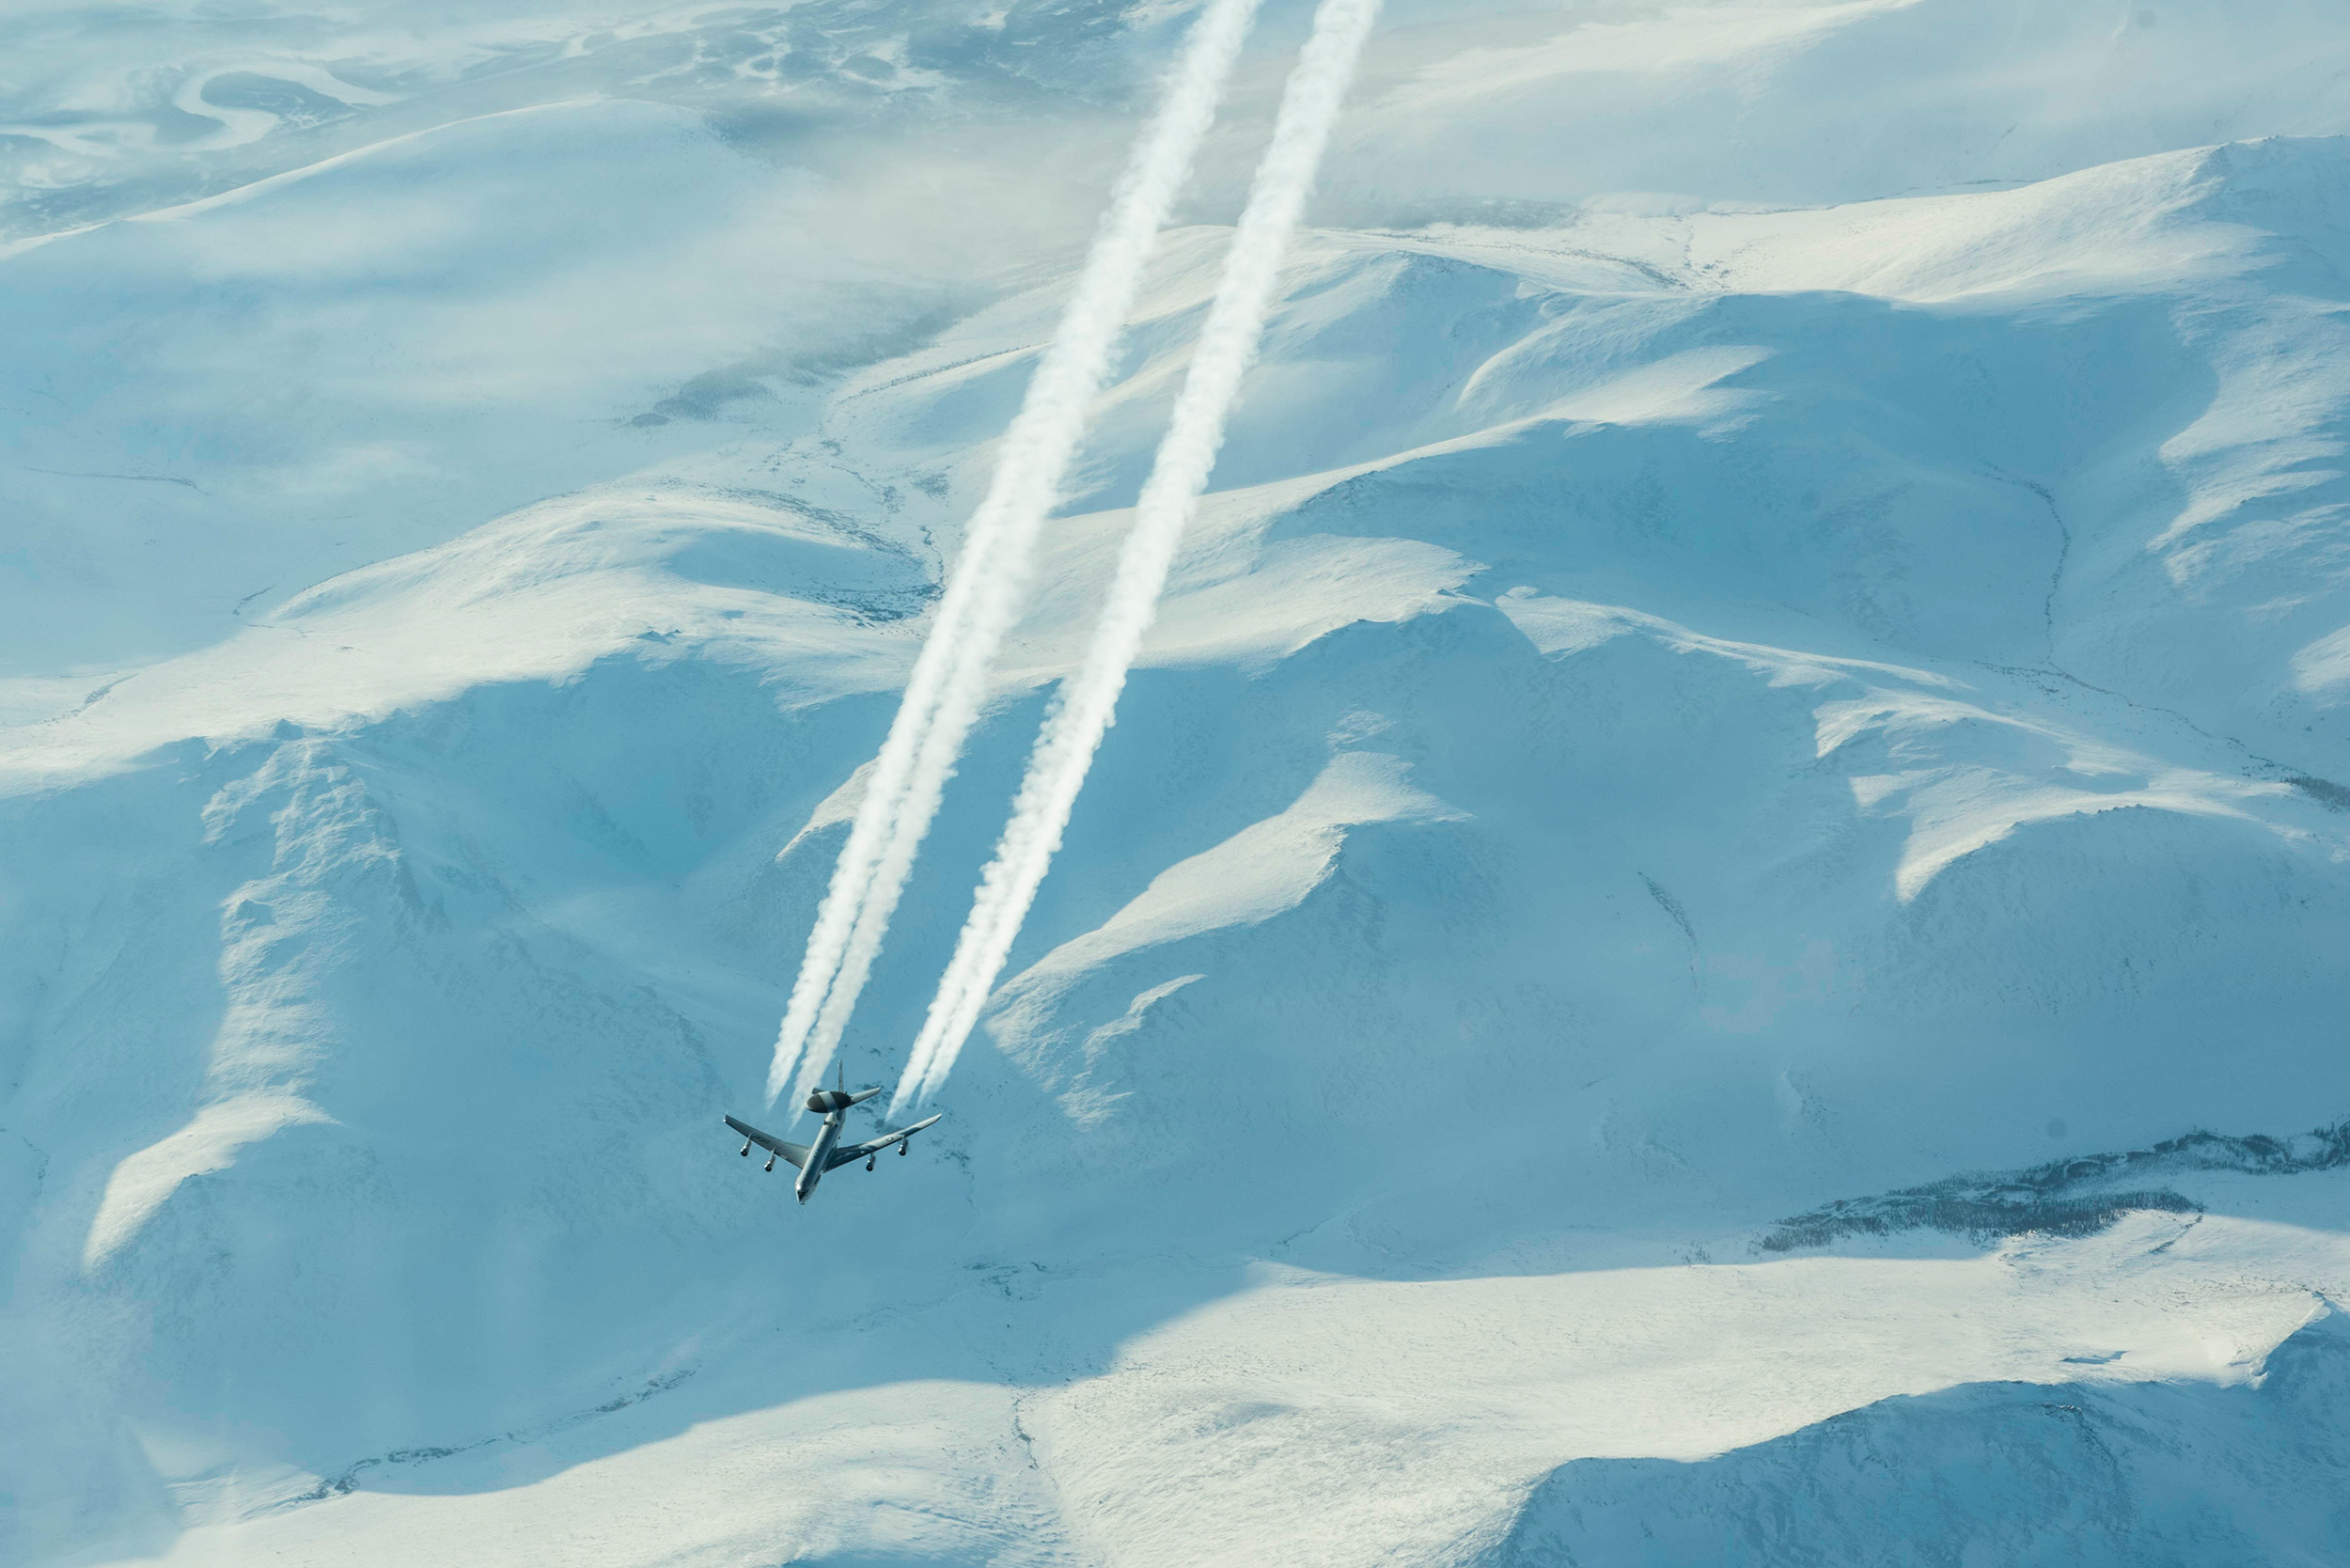 An E-3 Sentry mission to the high Arctic on March 10, 2020, supported by KC-135 Stratotankers. (NORAD)